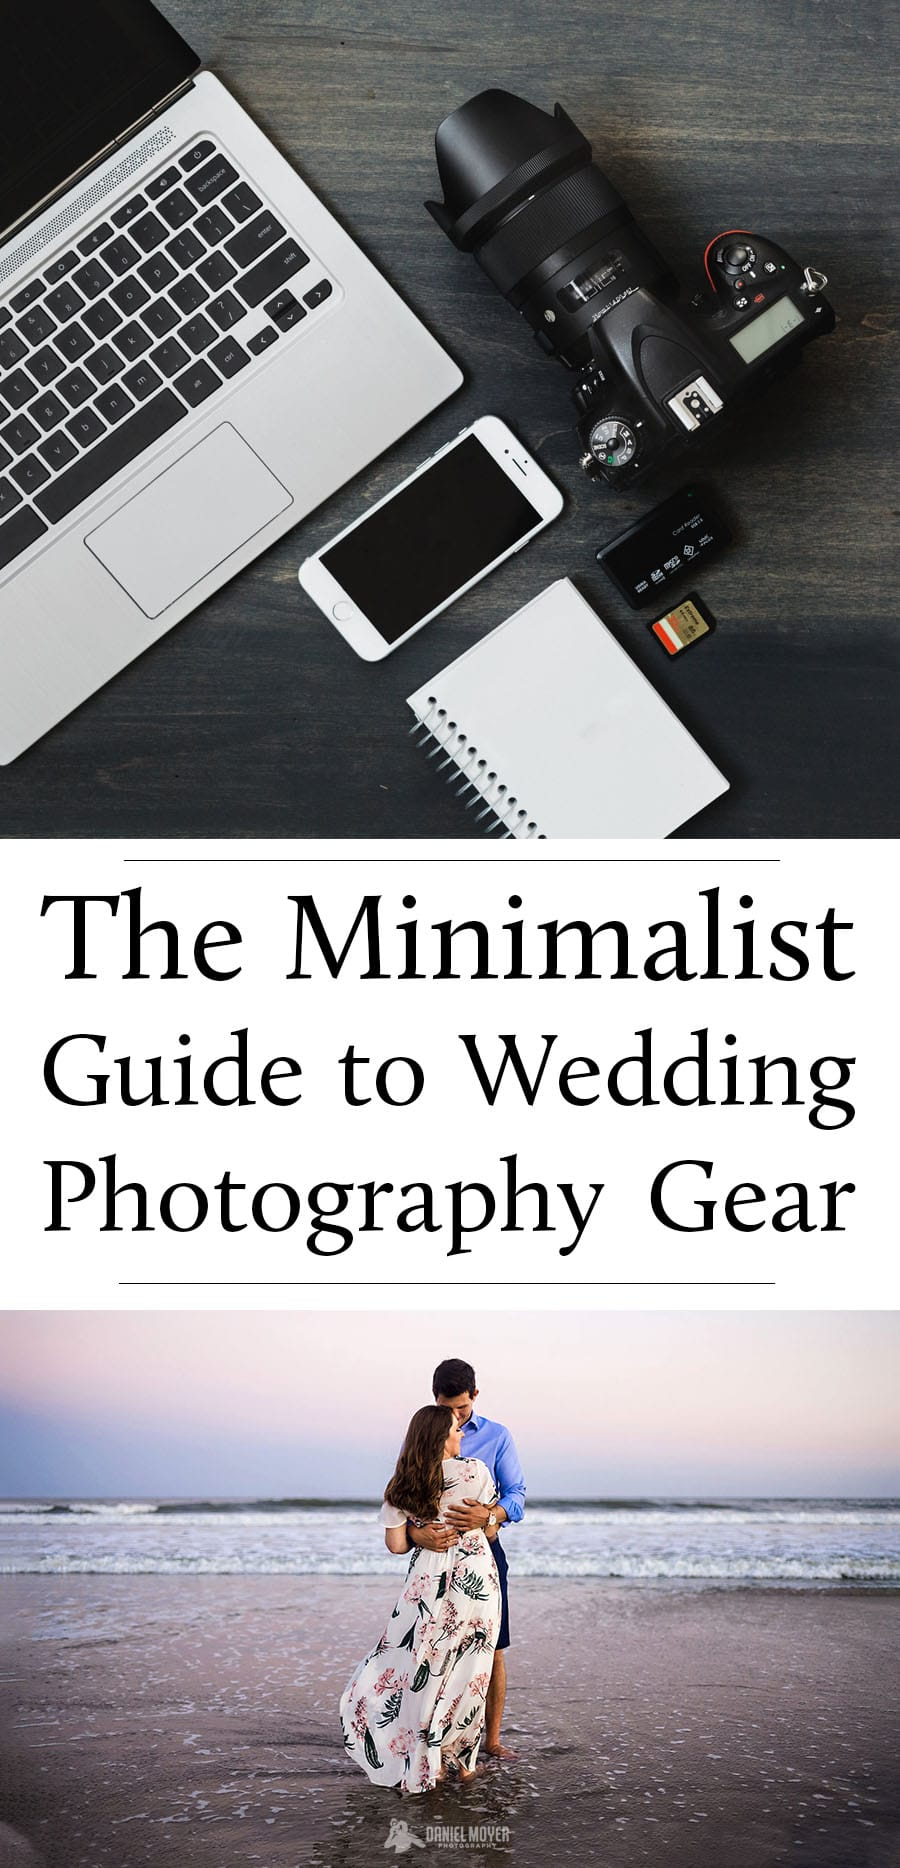 Title photo for the Minimalist Guide to Wedding Photography Gear with a photo of a computer, phone, camera, and camera card.